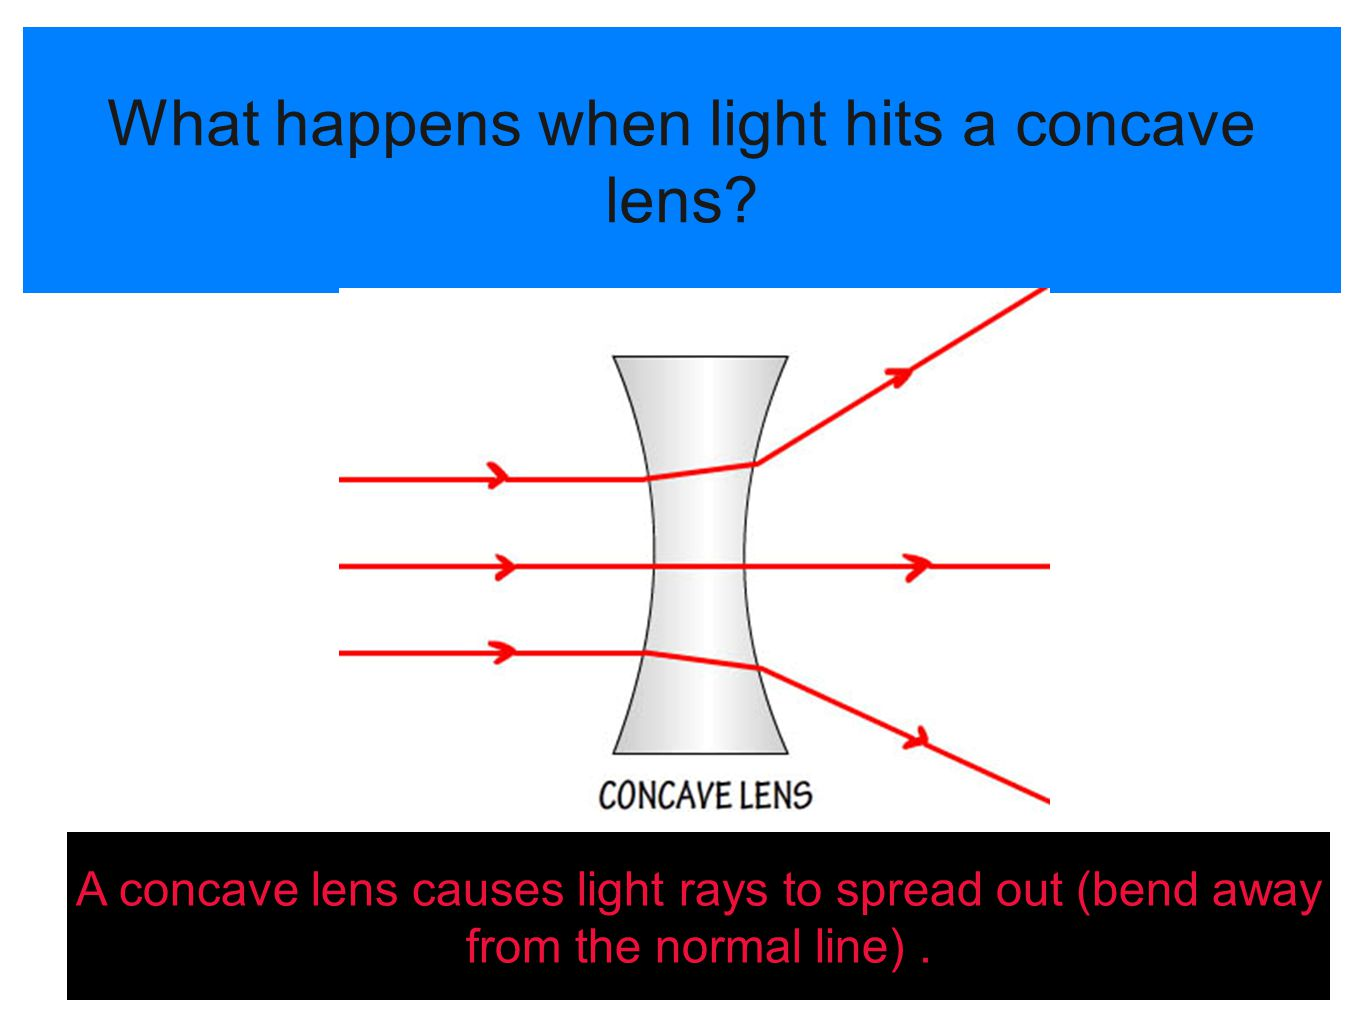 What happens when light hits a concave lens? A concave lens causes light rays to spread out (bend away from the normal line).